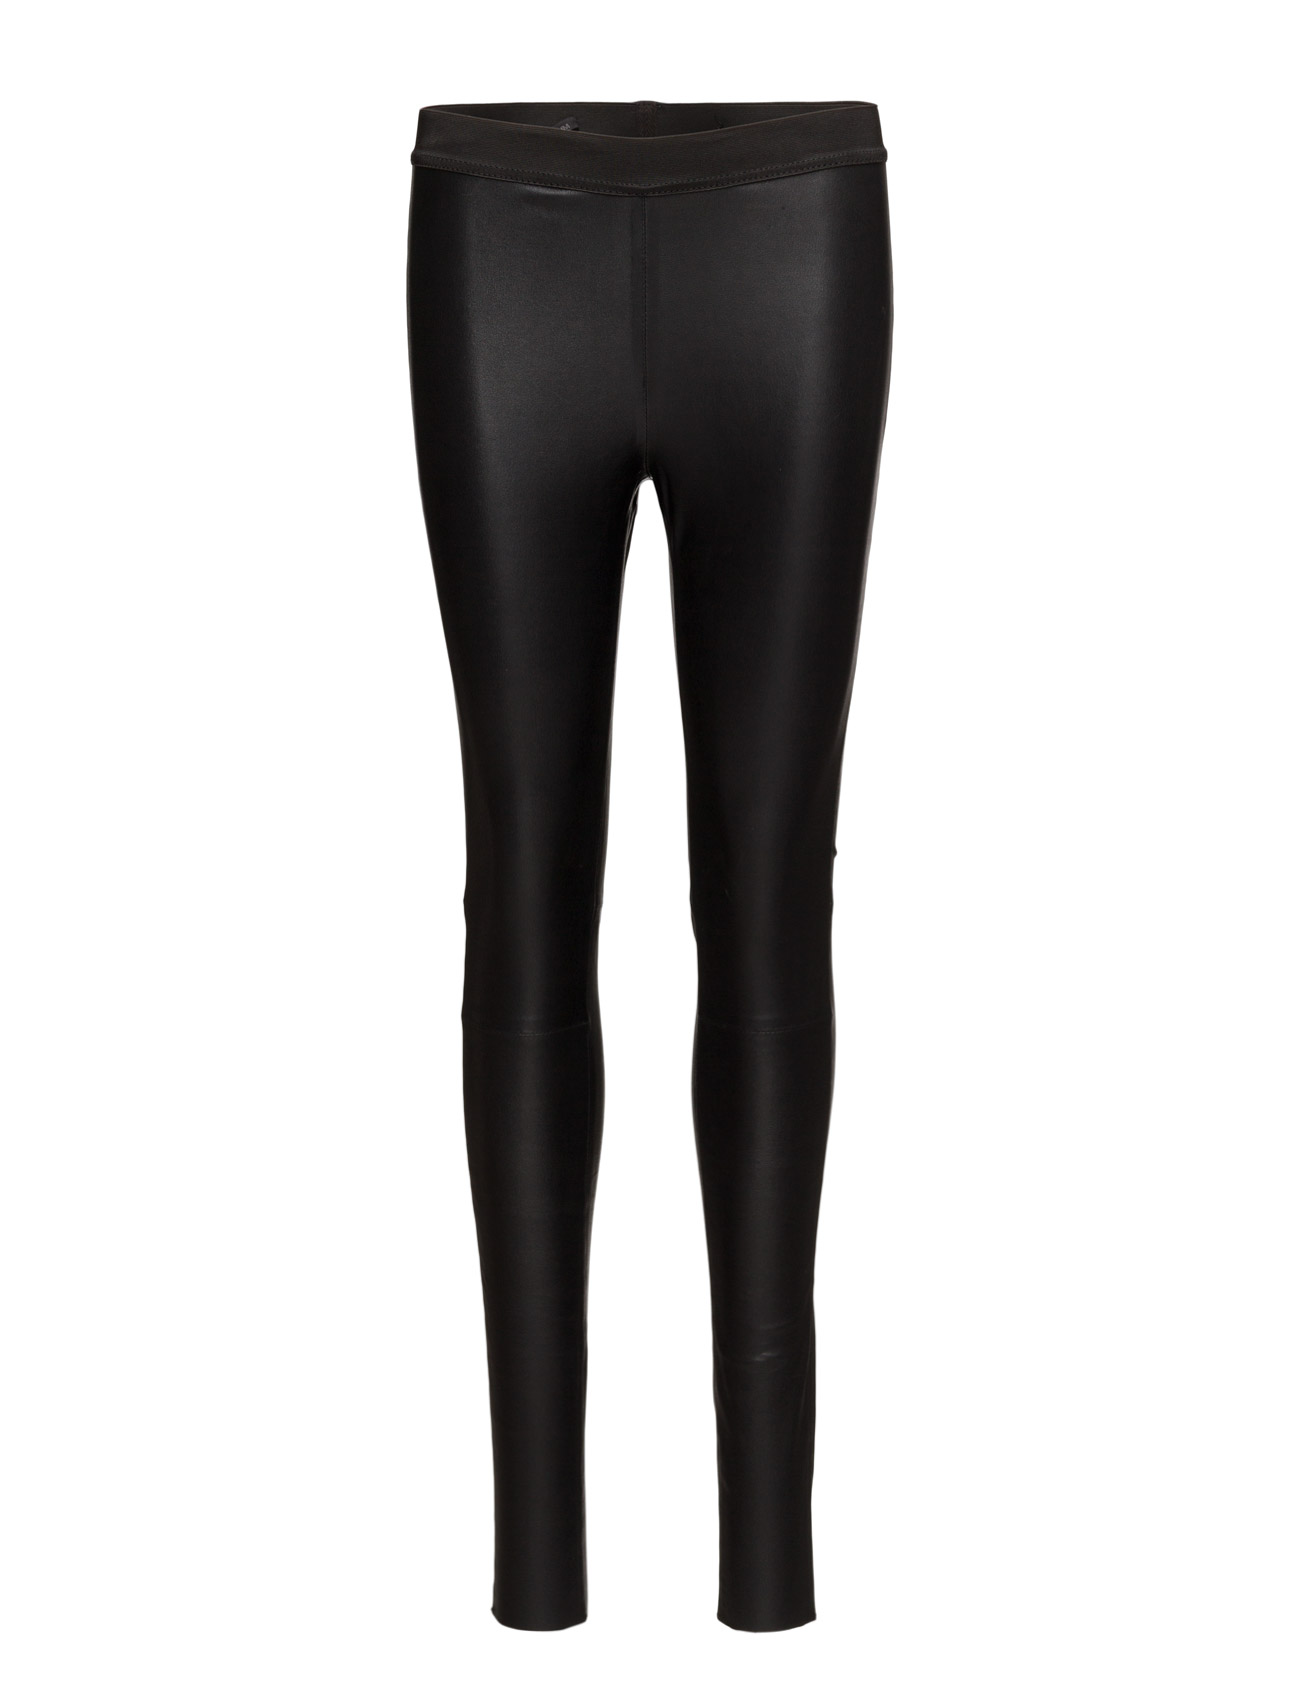 Leather Stretch Leggings (Black) thumbnail